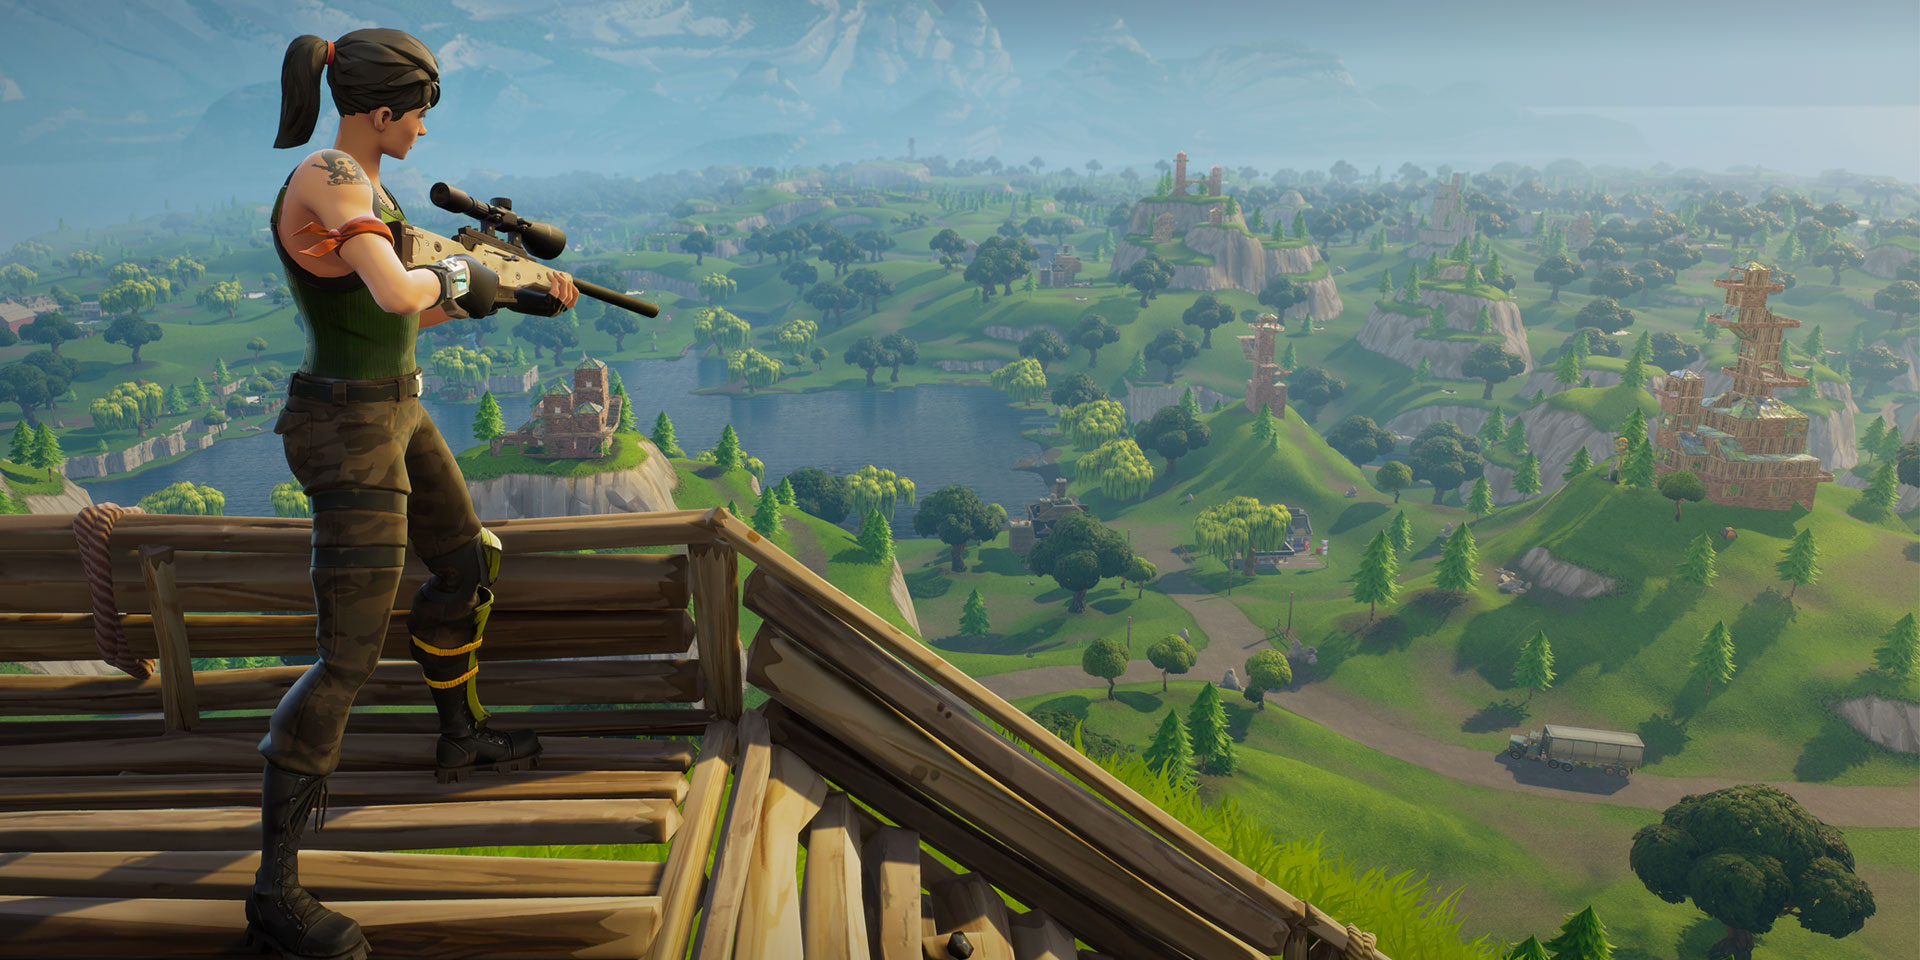 Unreal Engine Improvements for Fortnite: Battle Royale